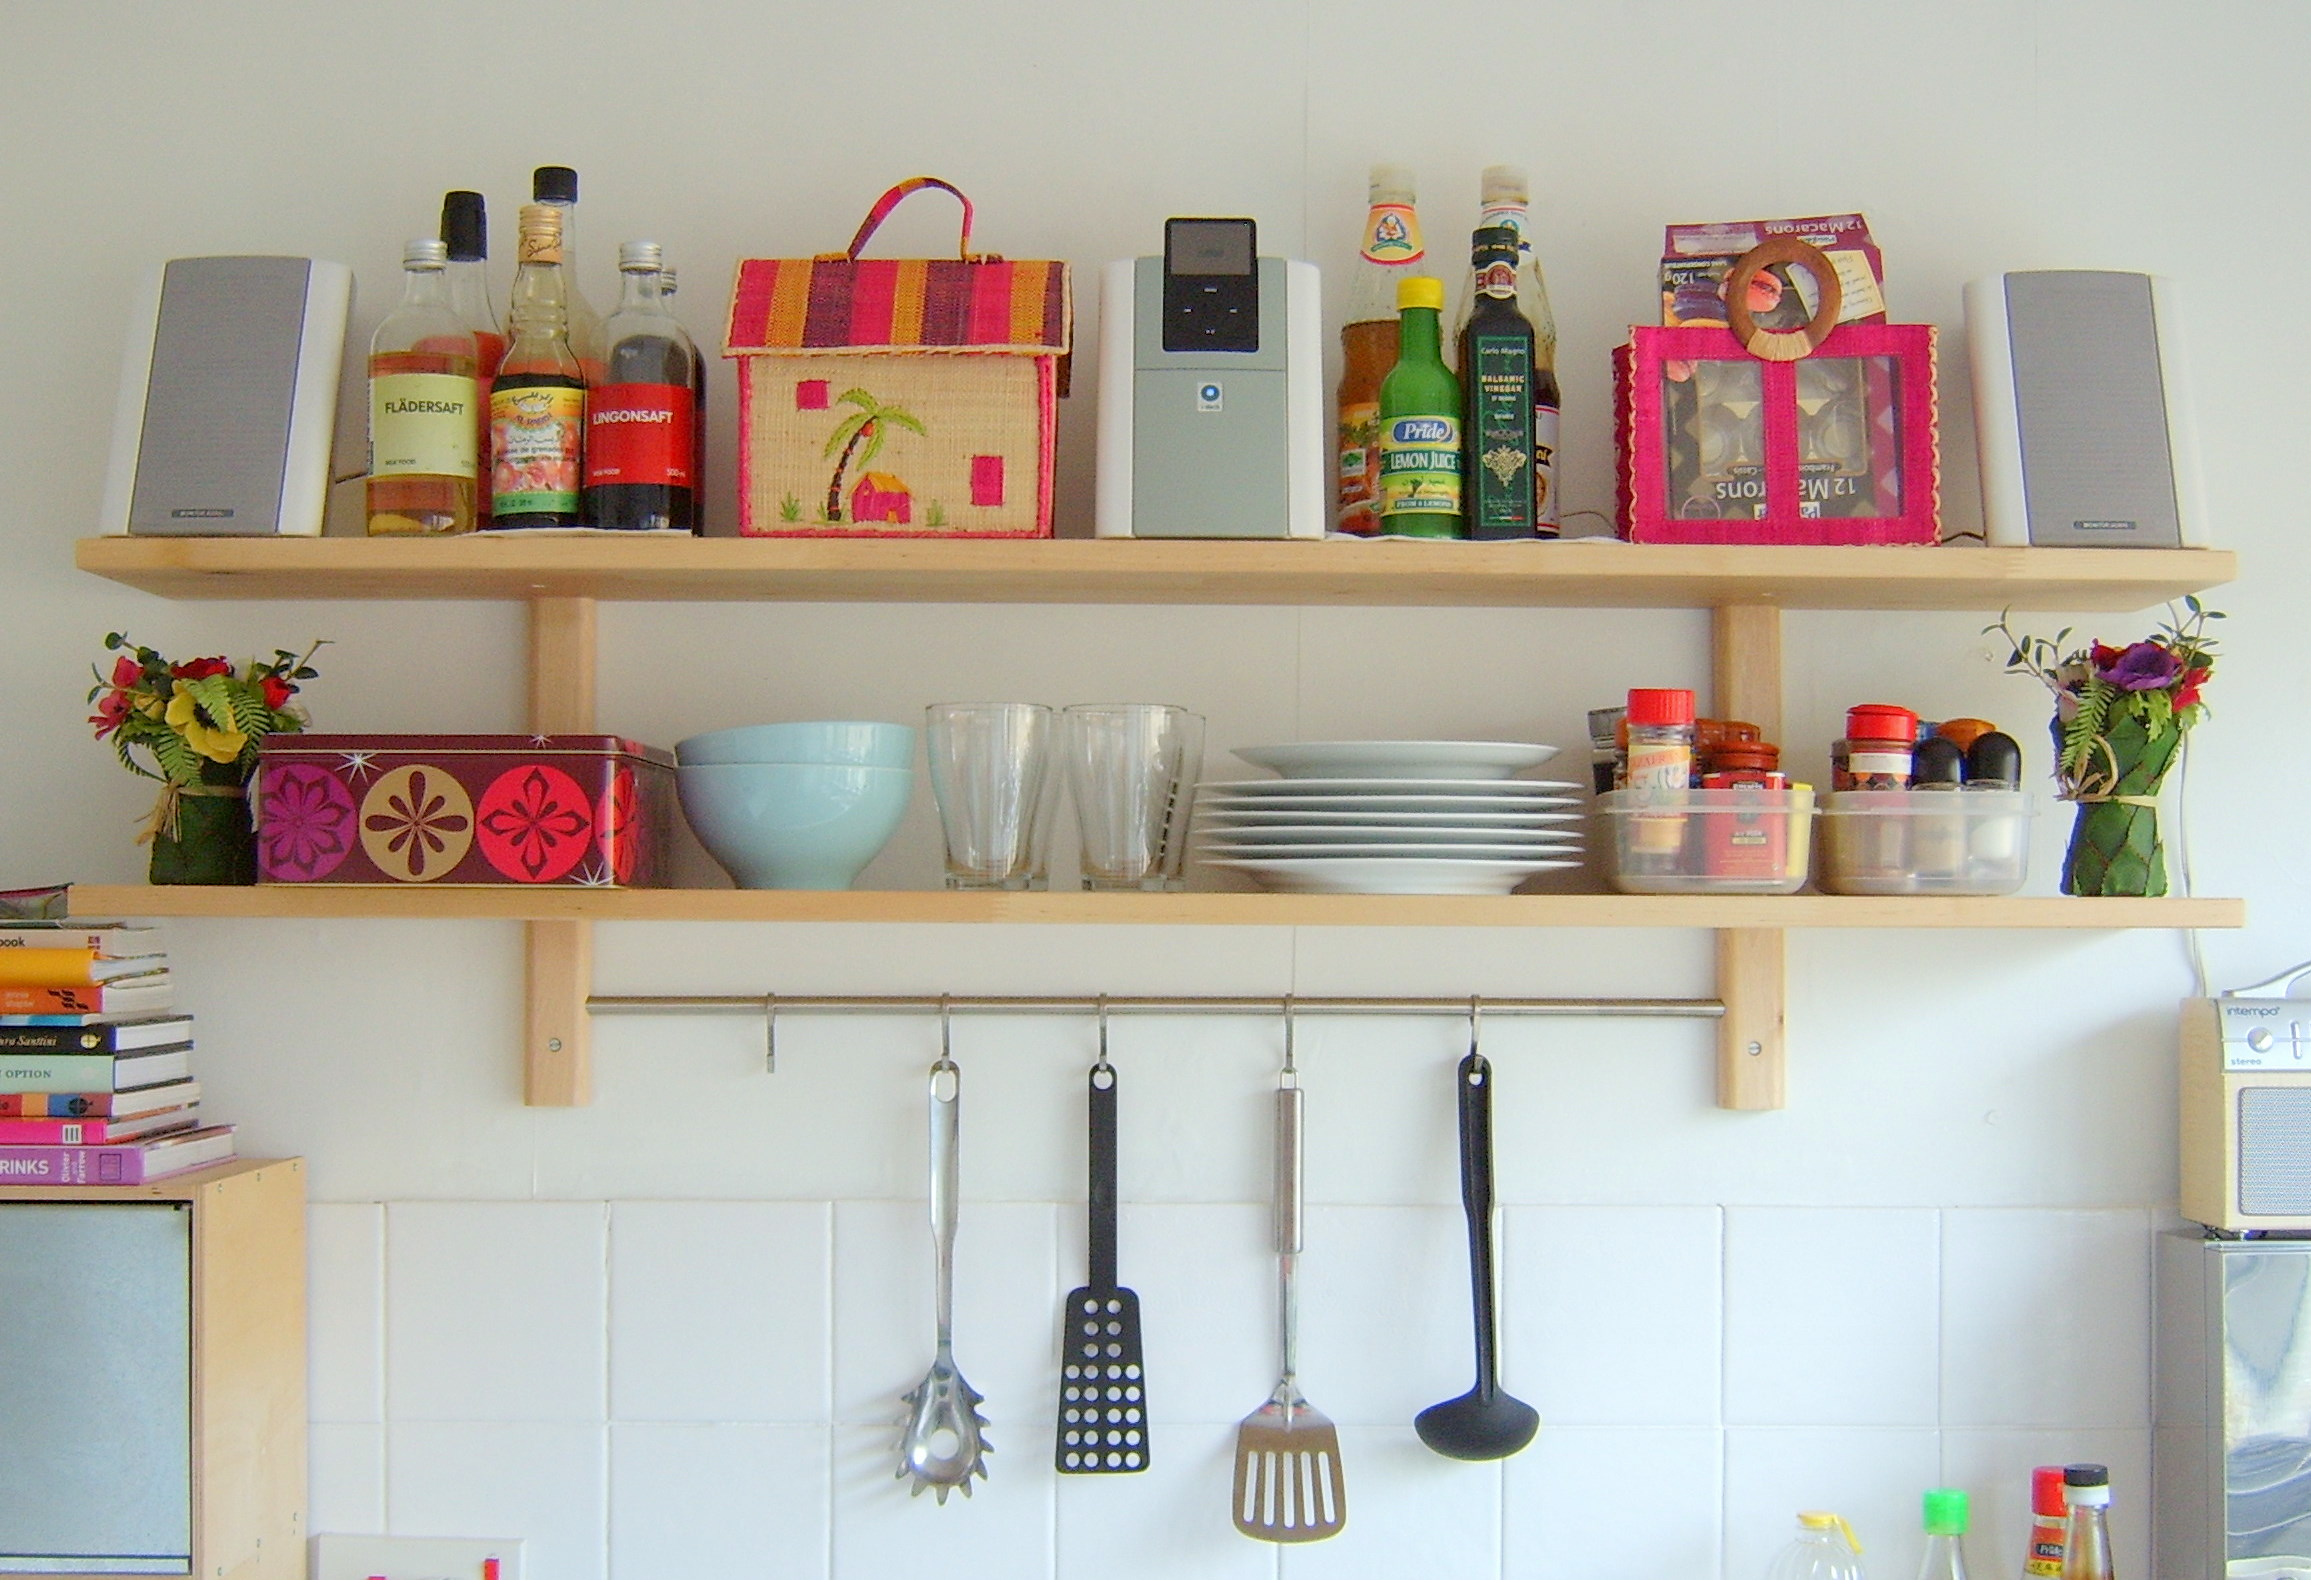 ikea-kitchen-shelf